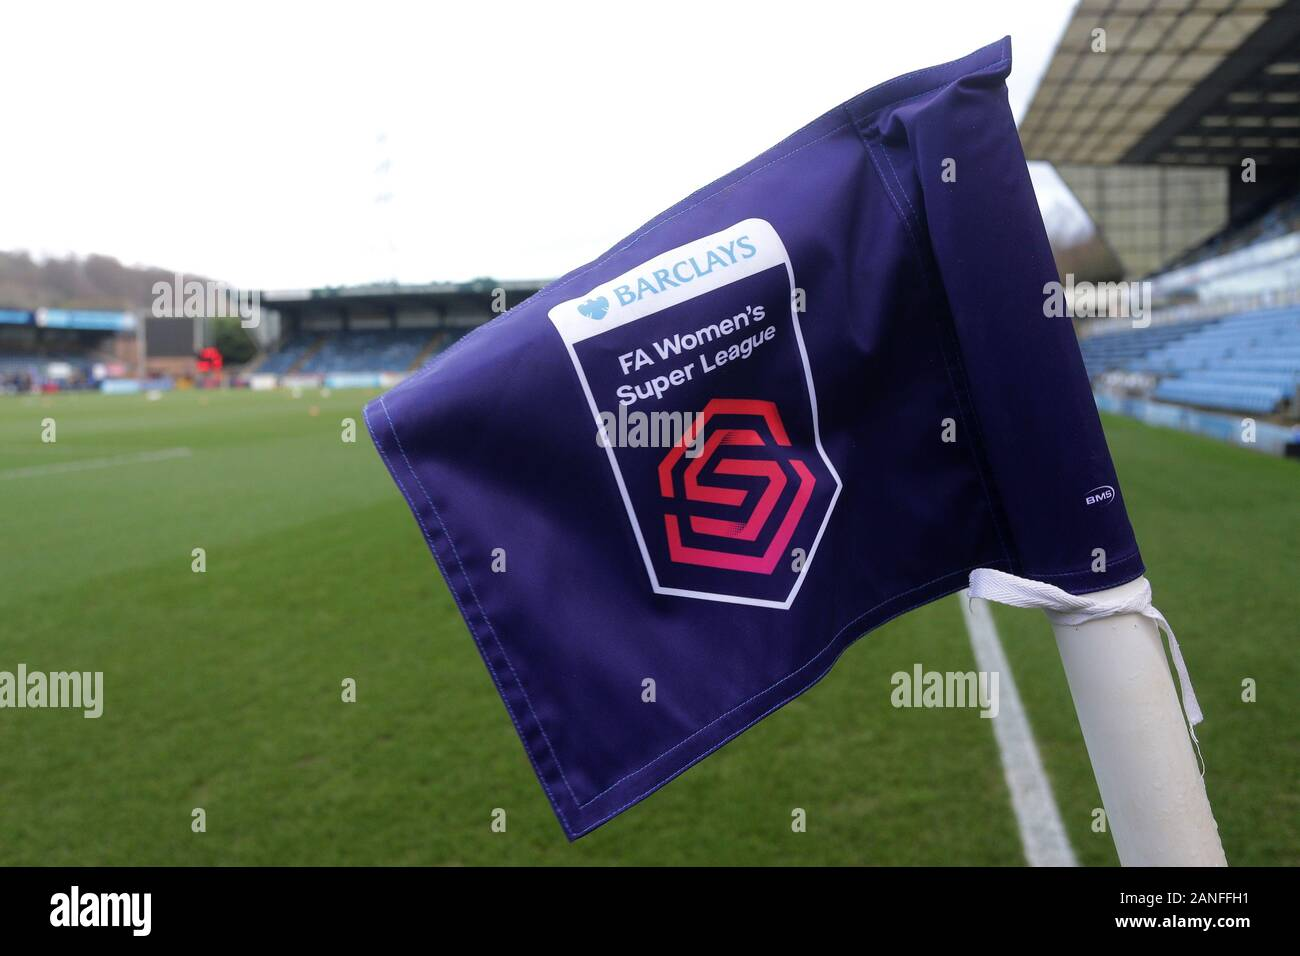 General view of the FAWSL corner flag ahead of Reading FC Women vs Arsenal Women, Barclays FA Women's Super League Football at Adams Park on 8th Decem Stock Photo